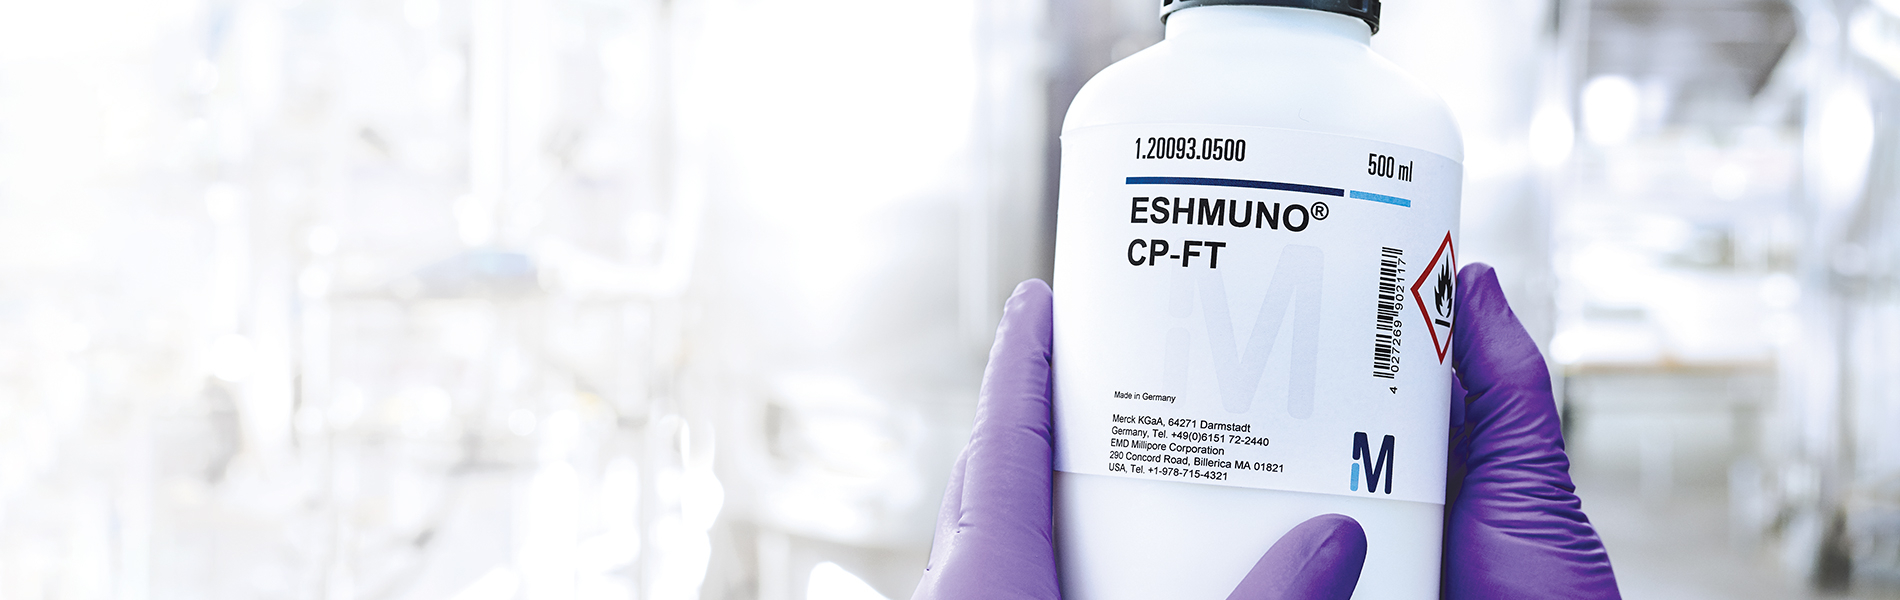 Flow-Through Removal of mAb Aggregates with Eshmuno® CP-FT Resin - ISPE Pharmaceutical Engineering